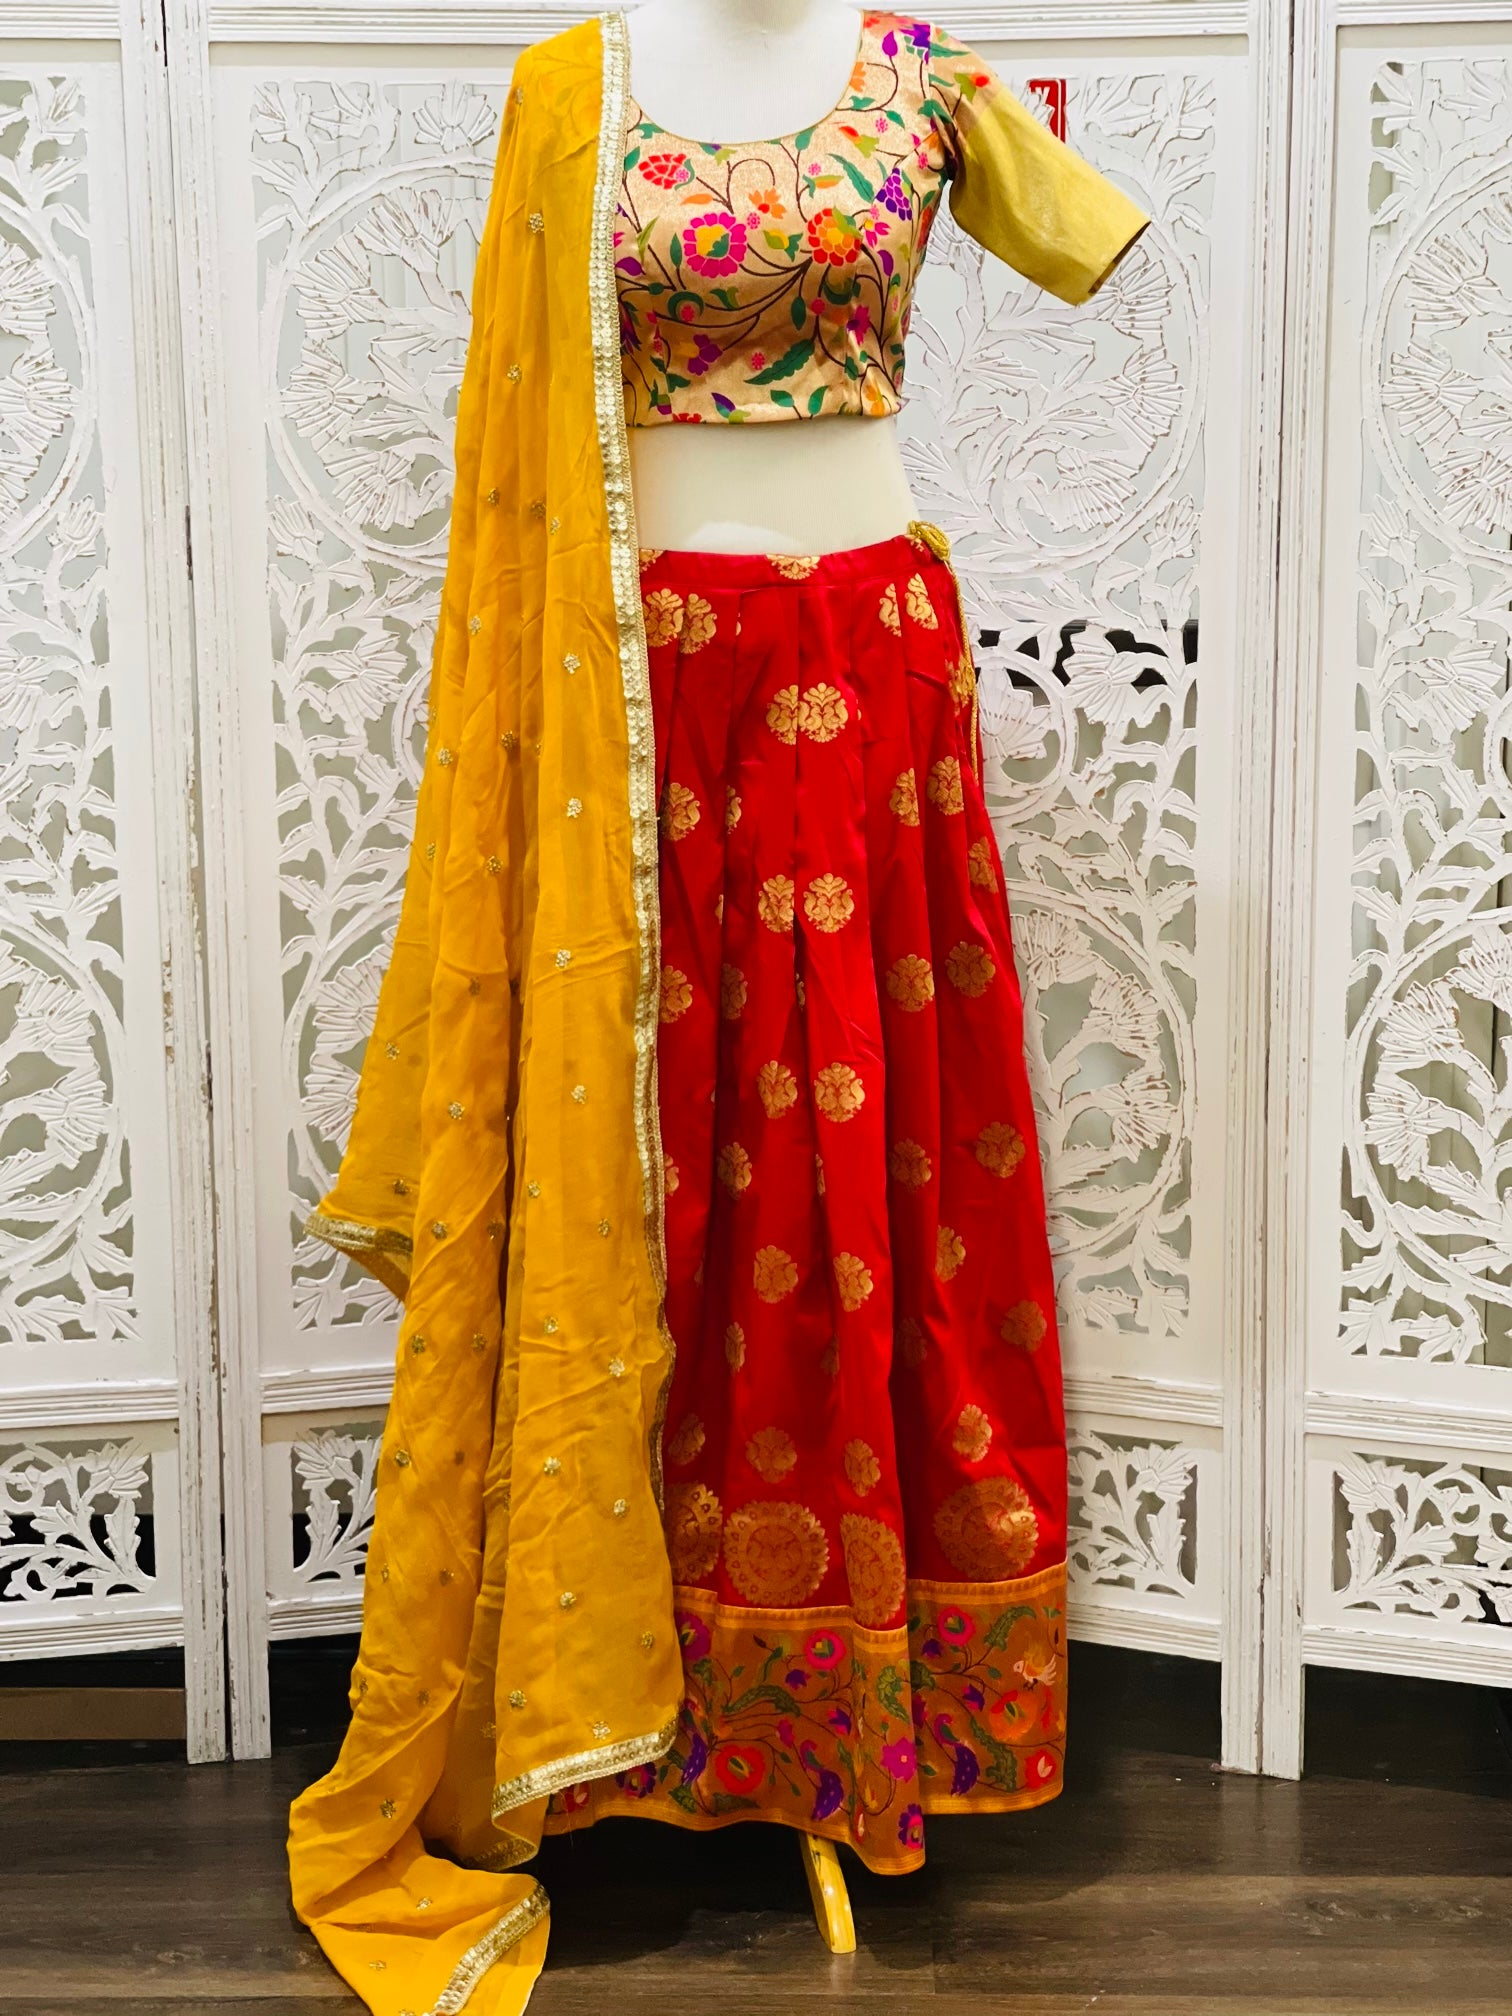 Yellow and Maroon Paithani Lehenga Choli - Sakkhi Style